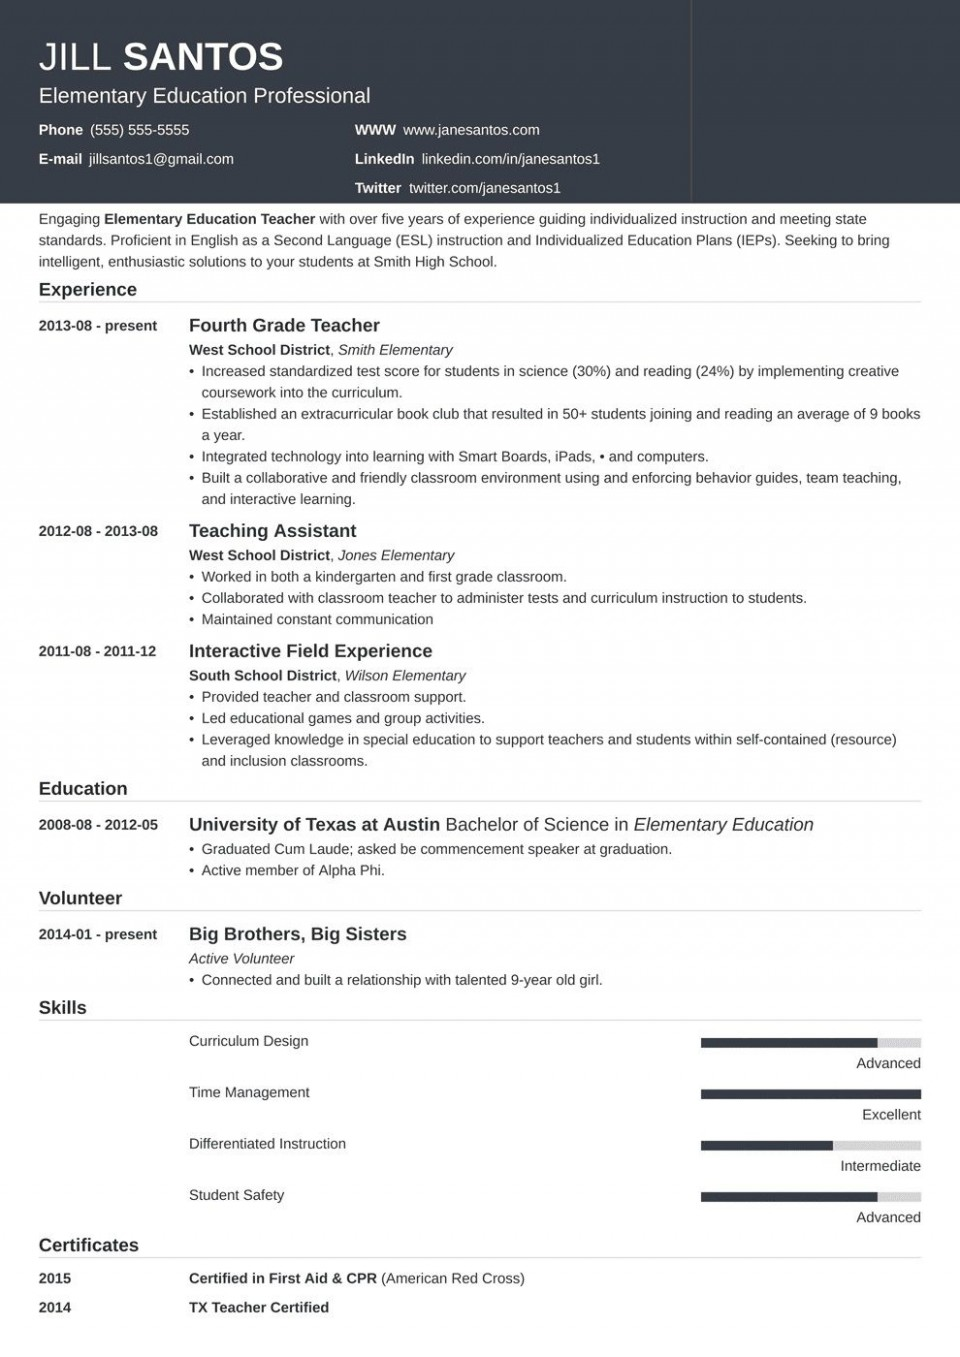 004 Archaicawful Resume Template For Teacher Highest Clarity  Australia Microsoft Word Sample960